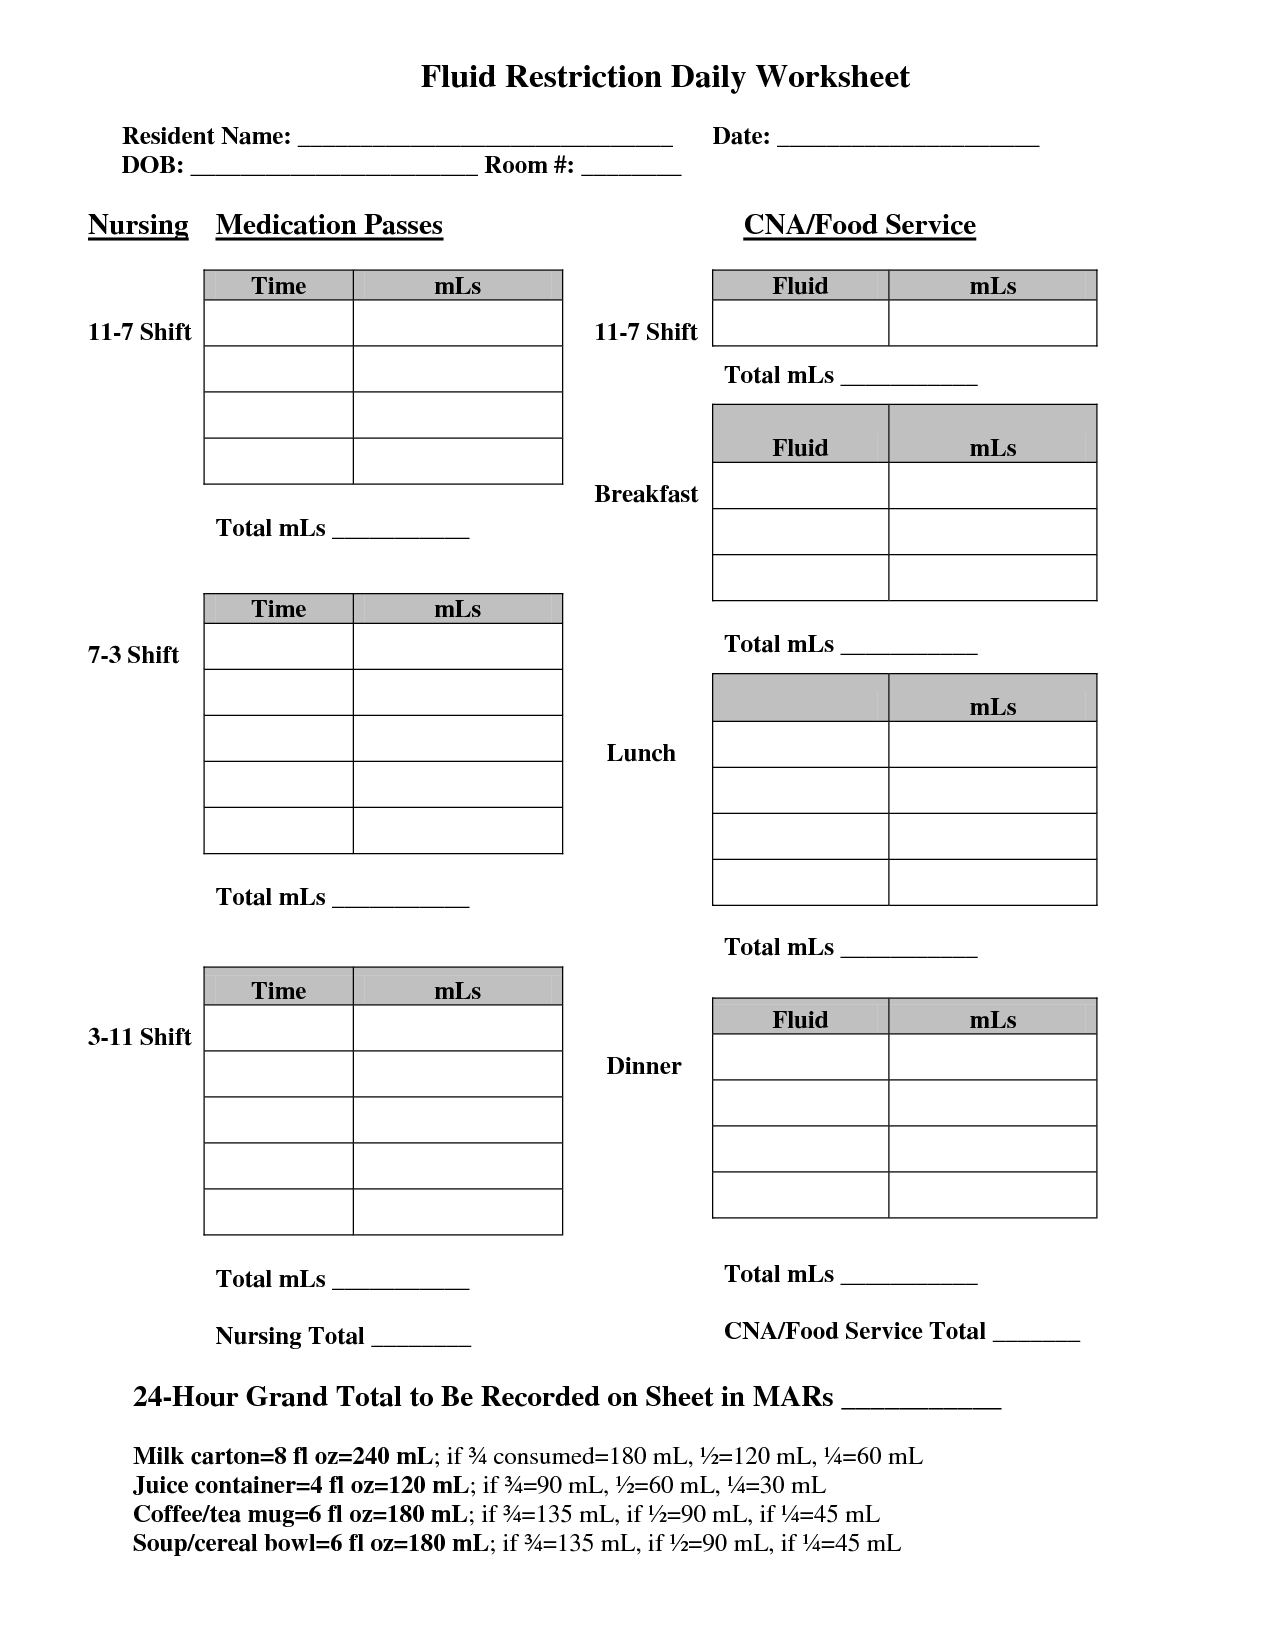 Daily Nursing Assignment Worksheet